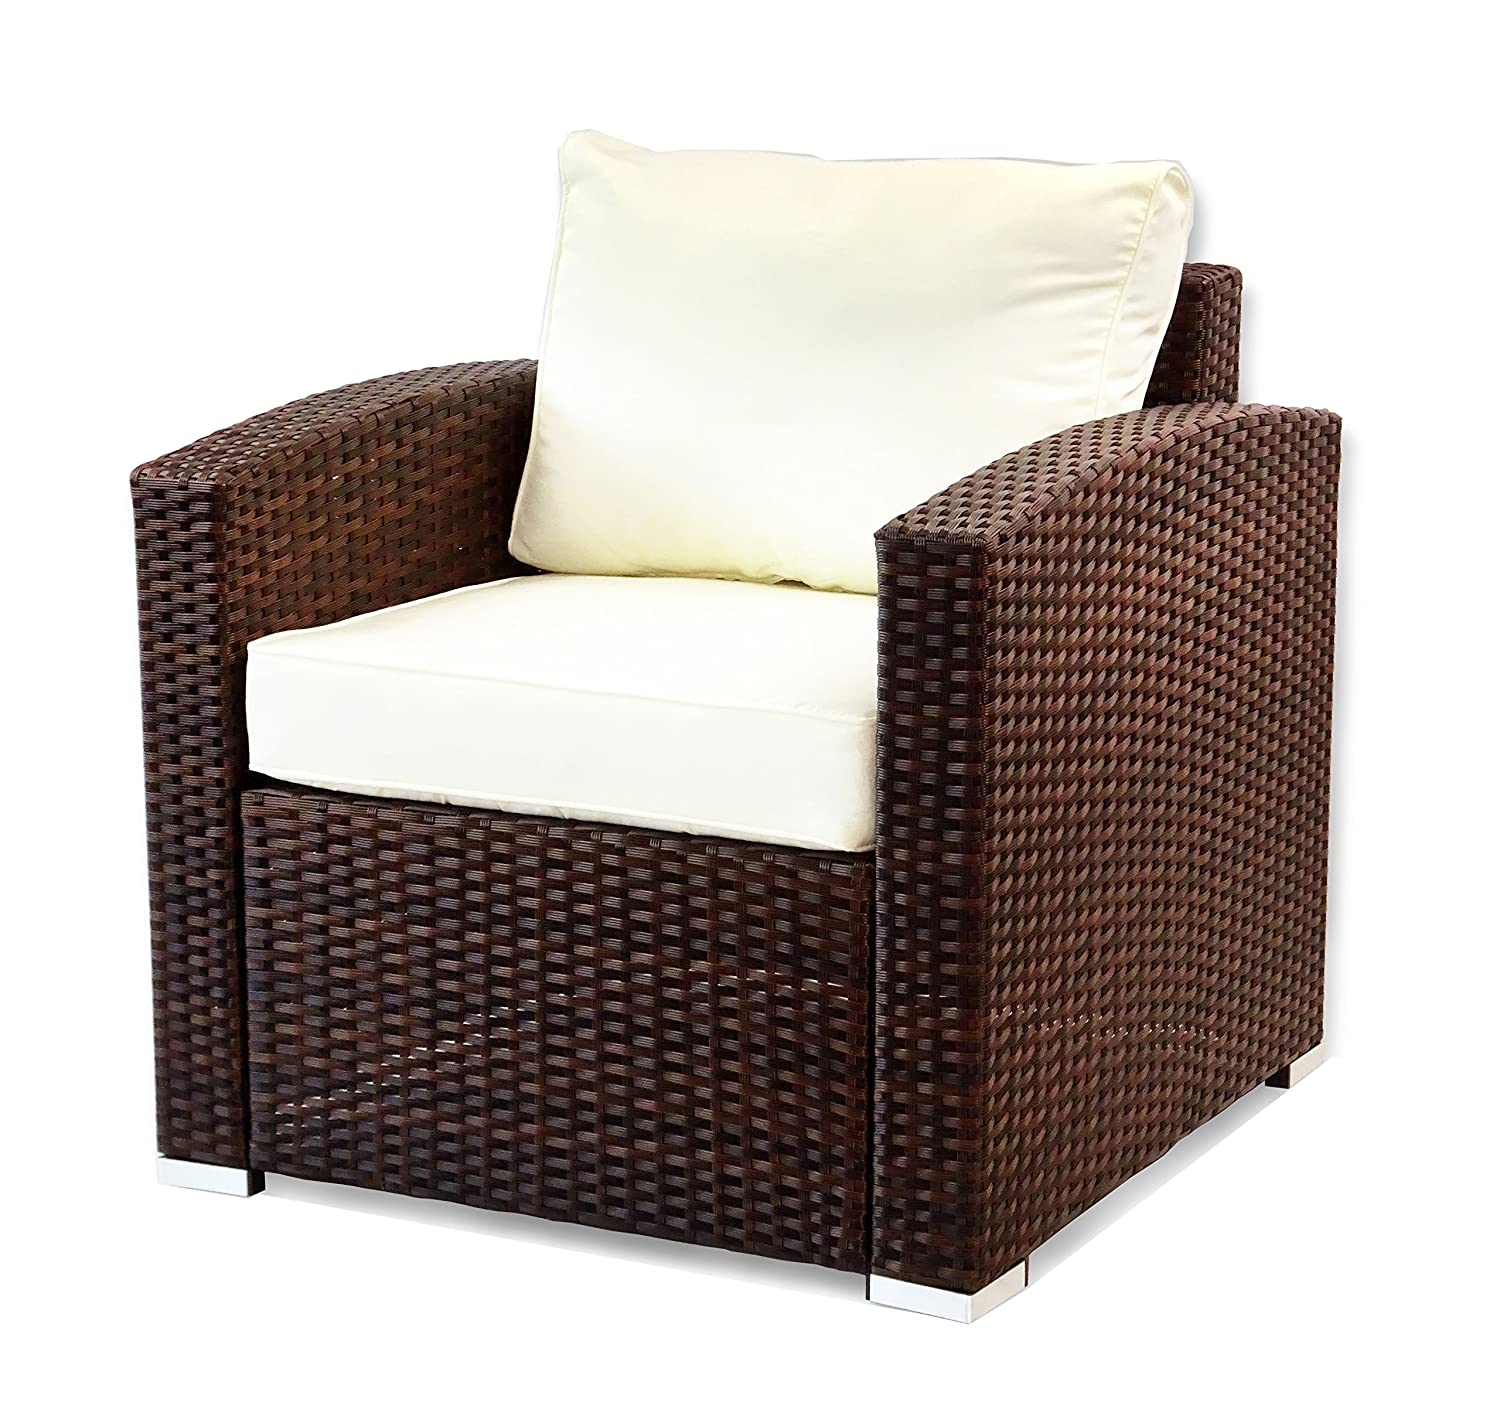 Patio Resin Outdoor Garden Deck Yard Wicker Lounge Chair w cushion. Dark Brown Color